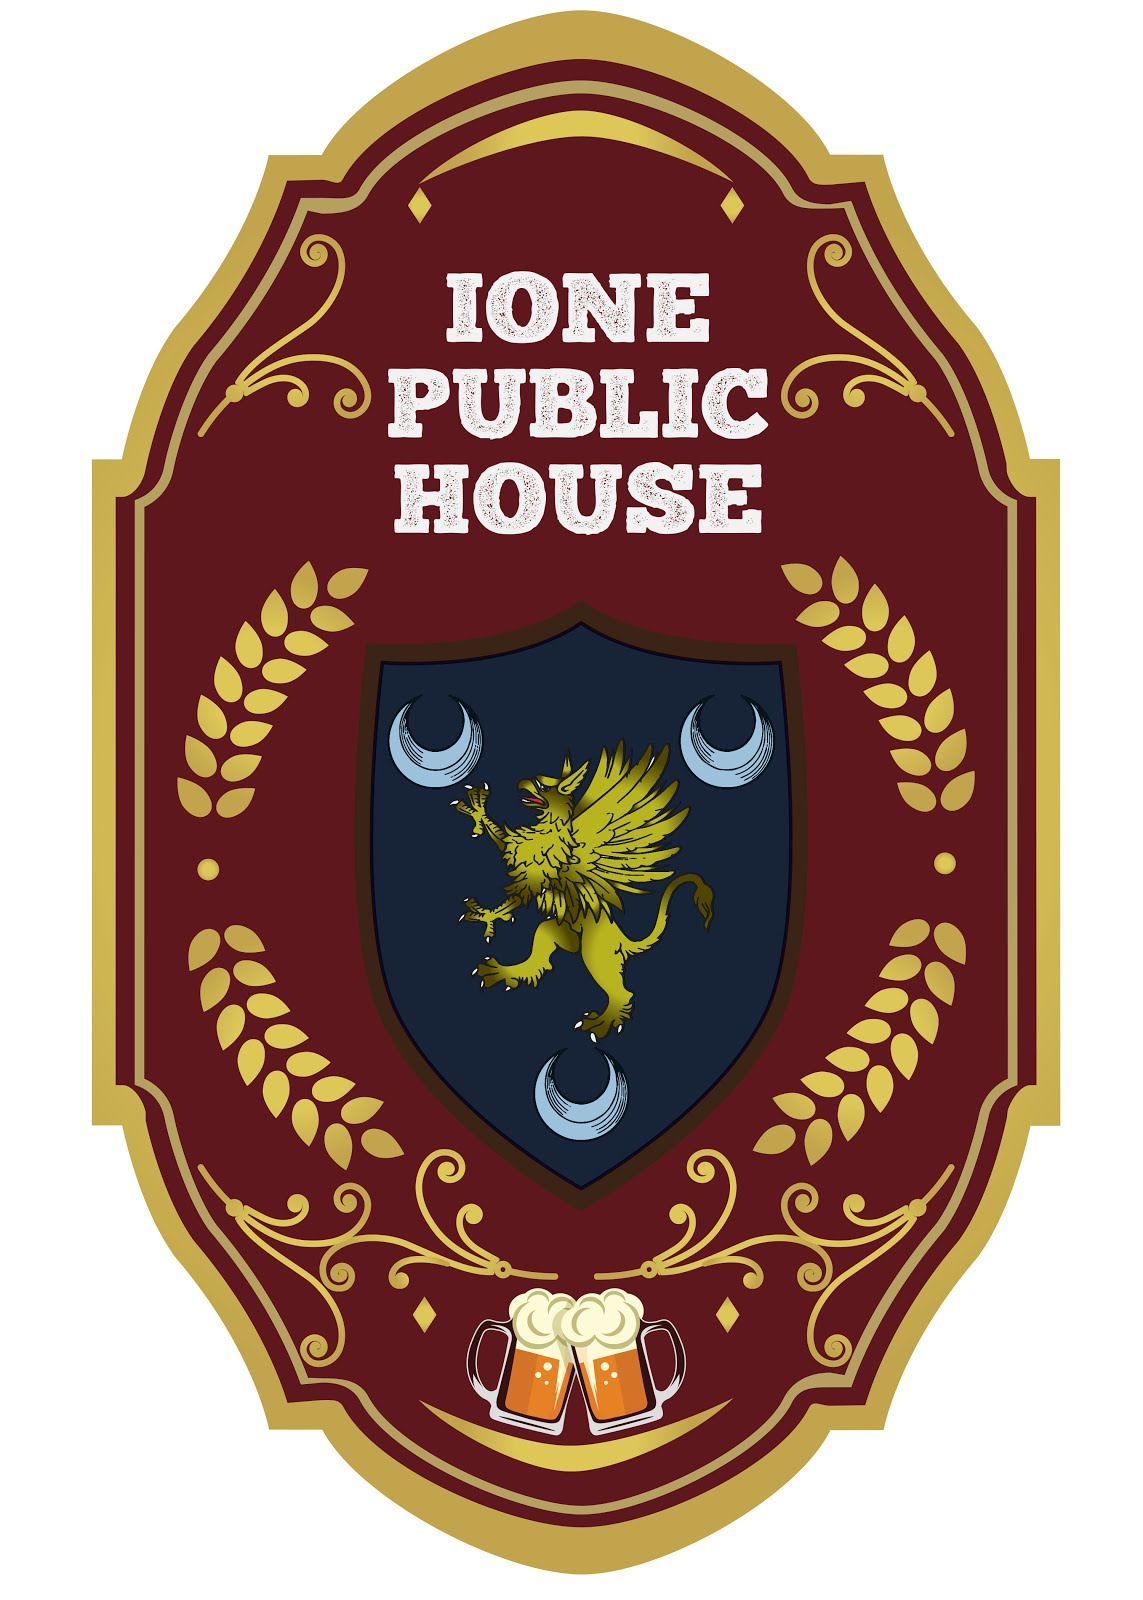 The Ione Public House